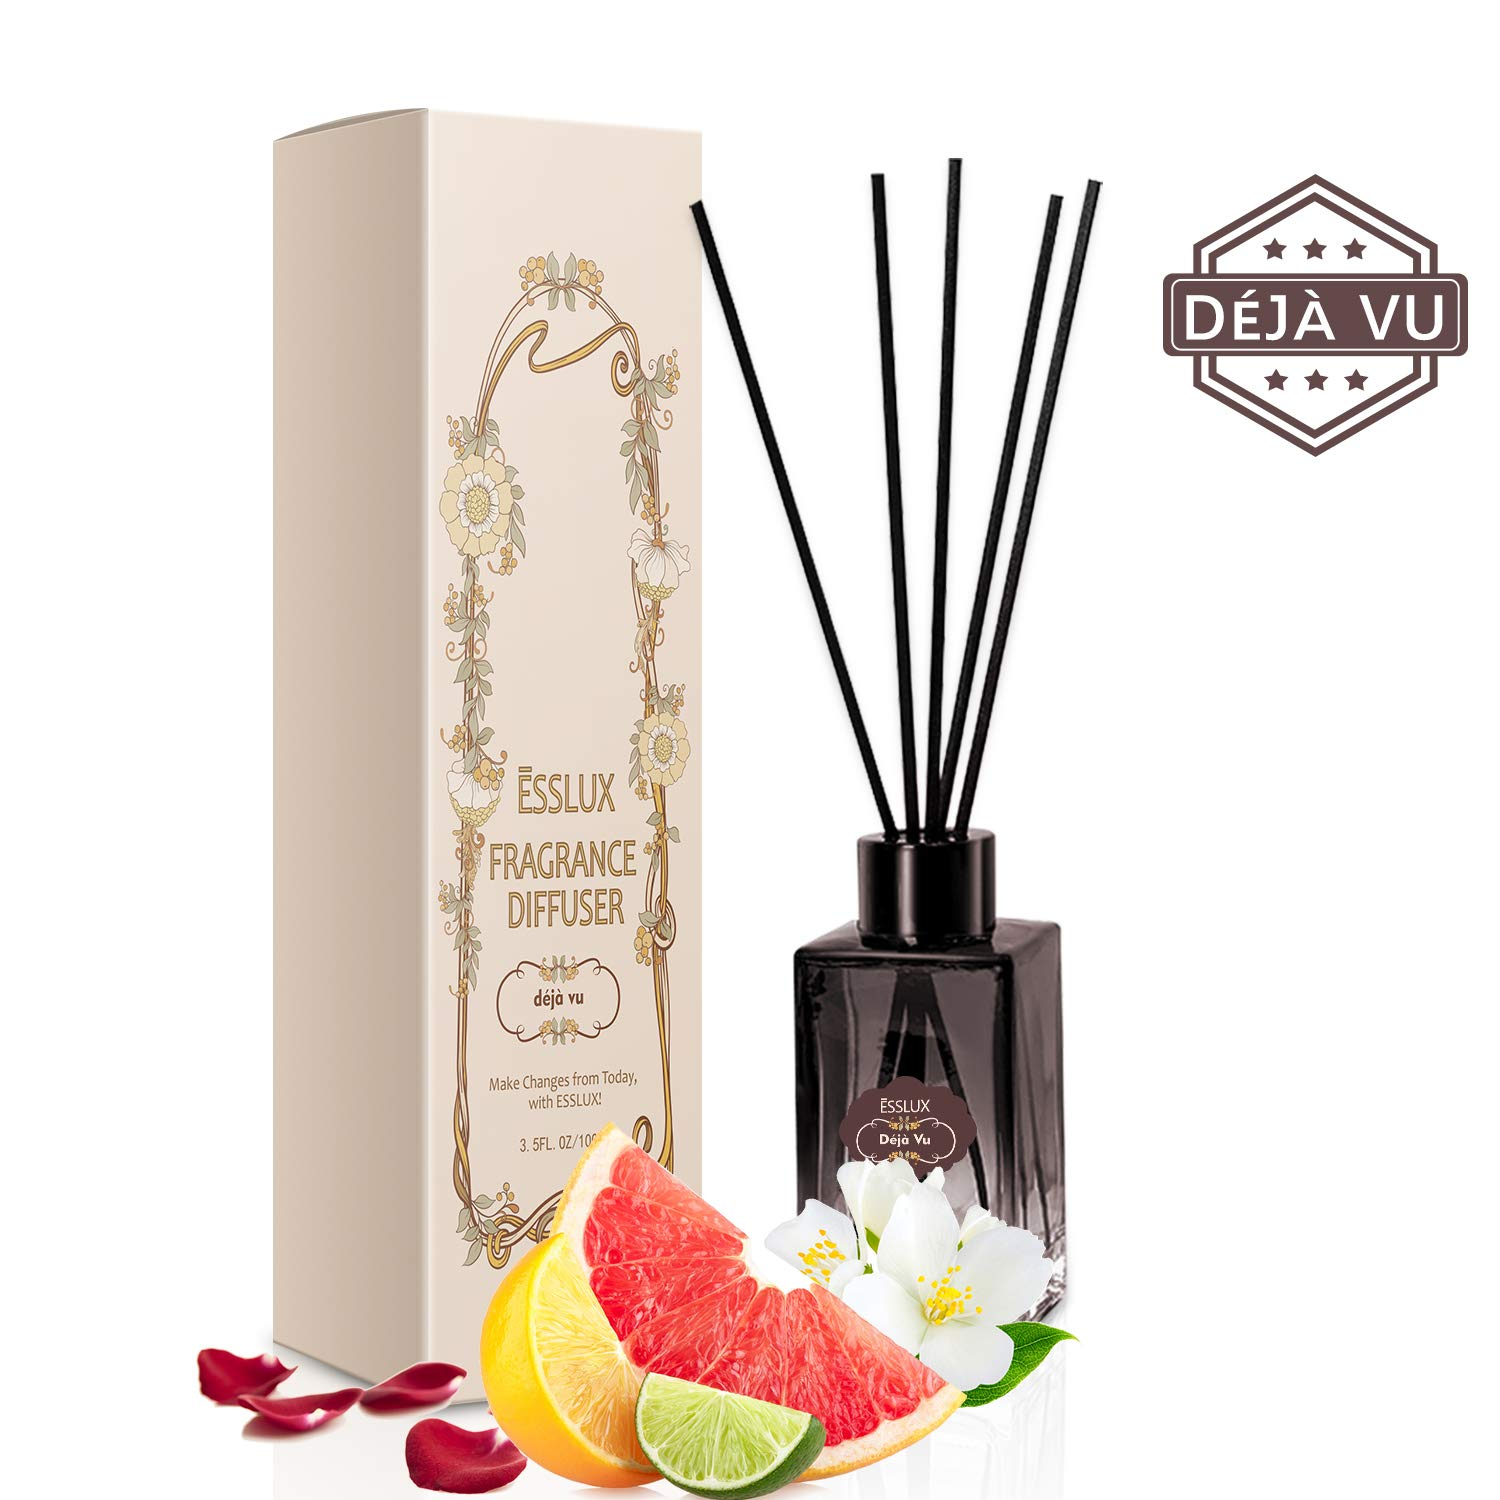 ESSLUX Reed Diffuser Set, Scent Diffuser Premium Quality for Home and Office, Air Freshener & Home Decor & Ideal Gift-Déjà Vu by ESSLUX